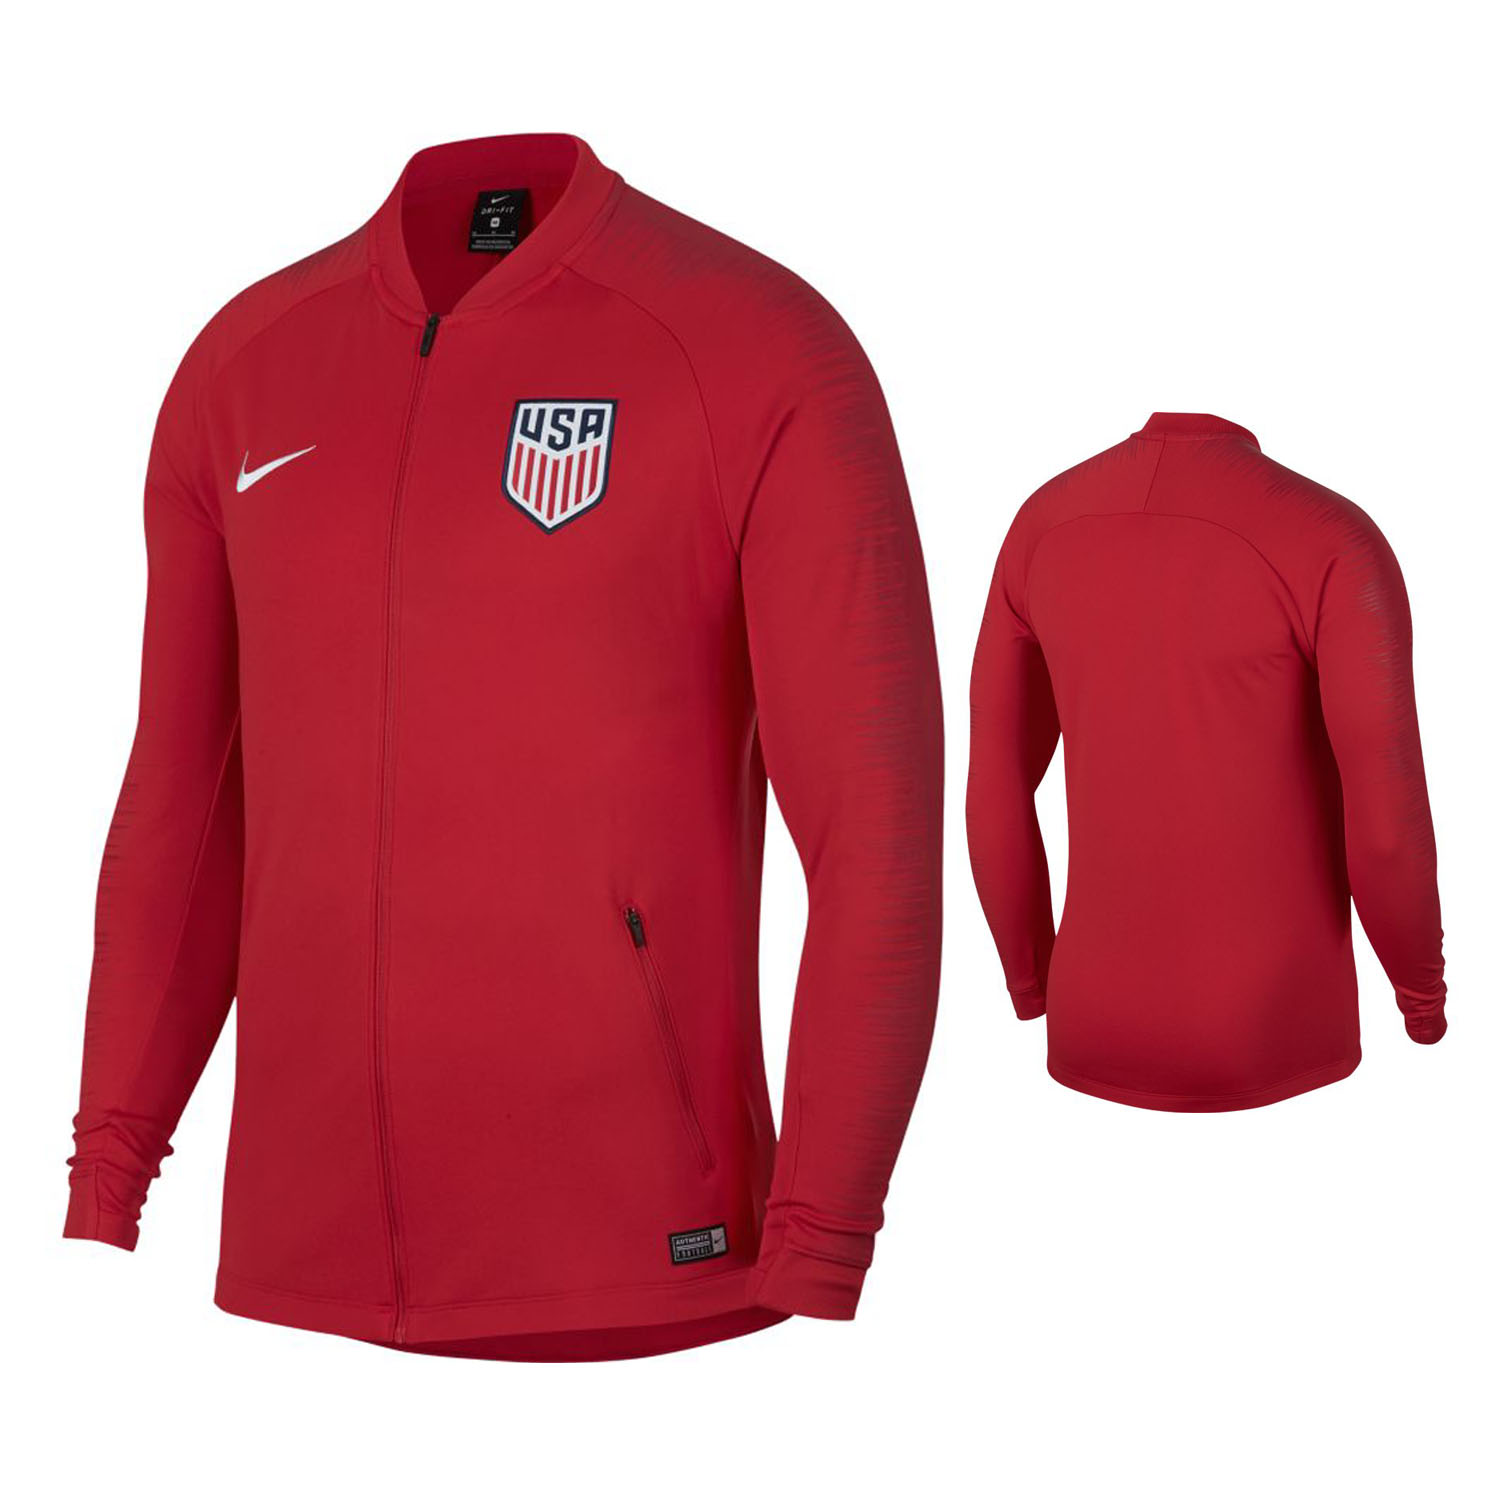 646832d7596 Nike USA Anthem Soccer Track Top (2018 19)   SoccerEvolution